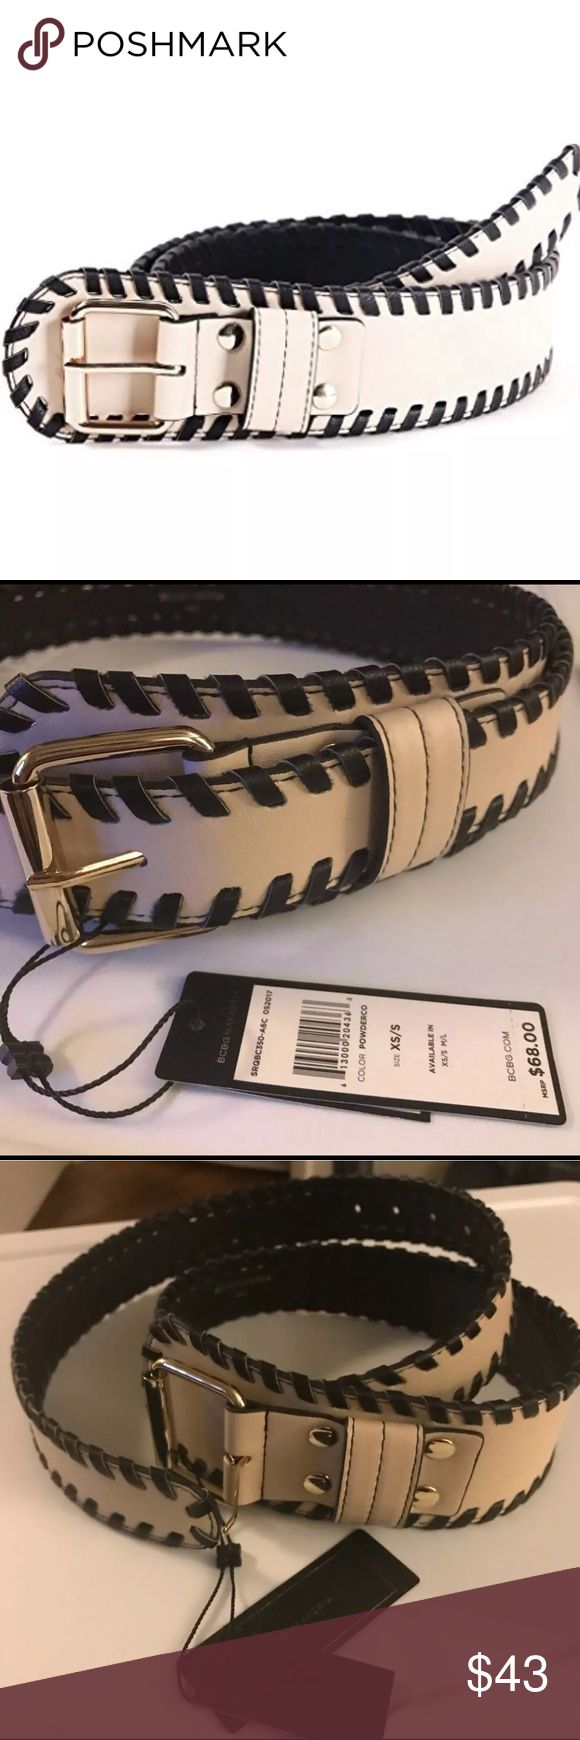 BCBGMAXAZRIA 🎀 Wide Braid Edged Faux Leather Belt BCBG MAXAZRIA Womens Wide Braid Edged Faux Leather Belt Beige/Off White XS/S. Braided brim design to decorate your dresses. Would look fantastic with your fave LBD! New with Tag. Original Price $68 BCBGMaxAzria Accessories Belts